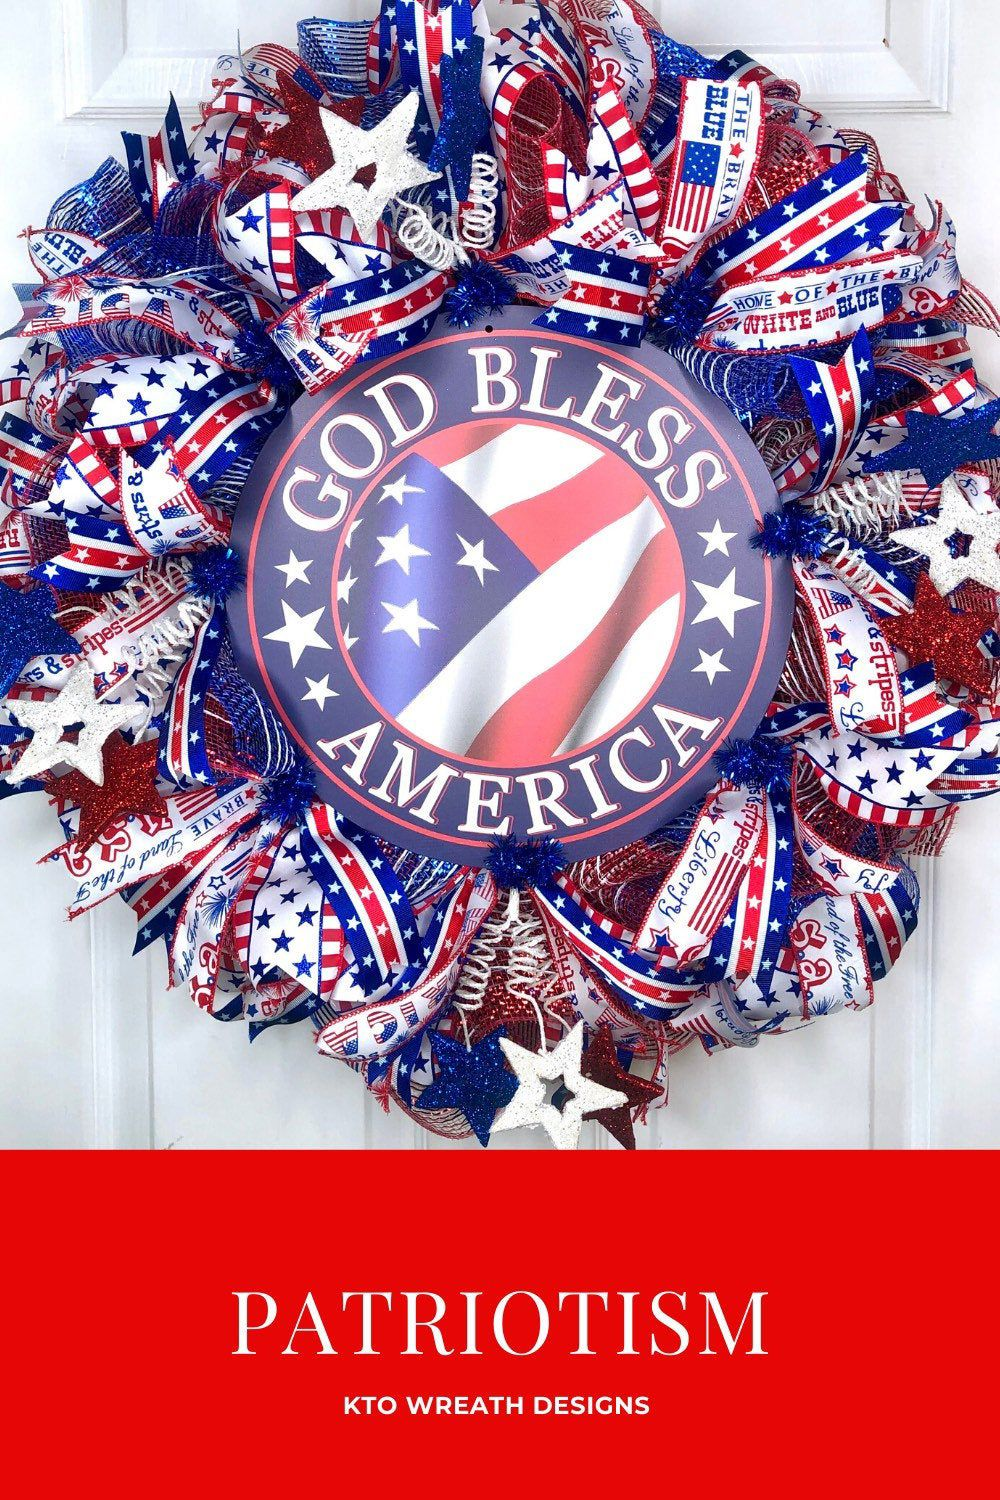 Patriotic Wreath, God Bless America Wreath, 4th of July Wreath, Memorial Day Wreath, Patriotic Sign, Veterans Day Wreath, Independence Day